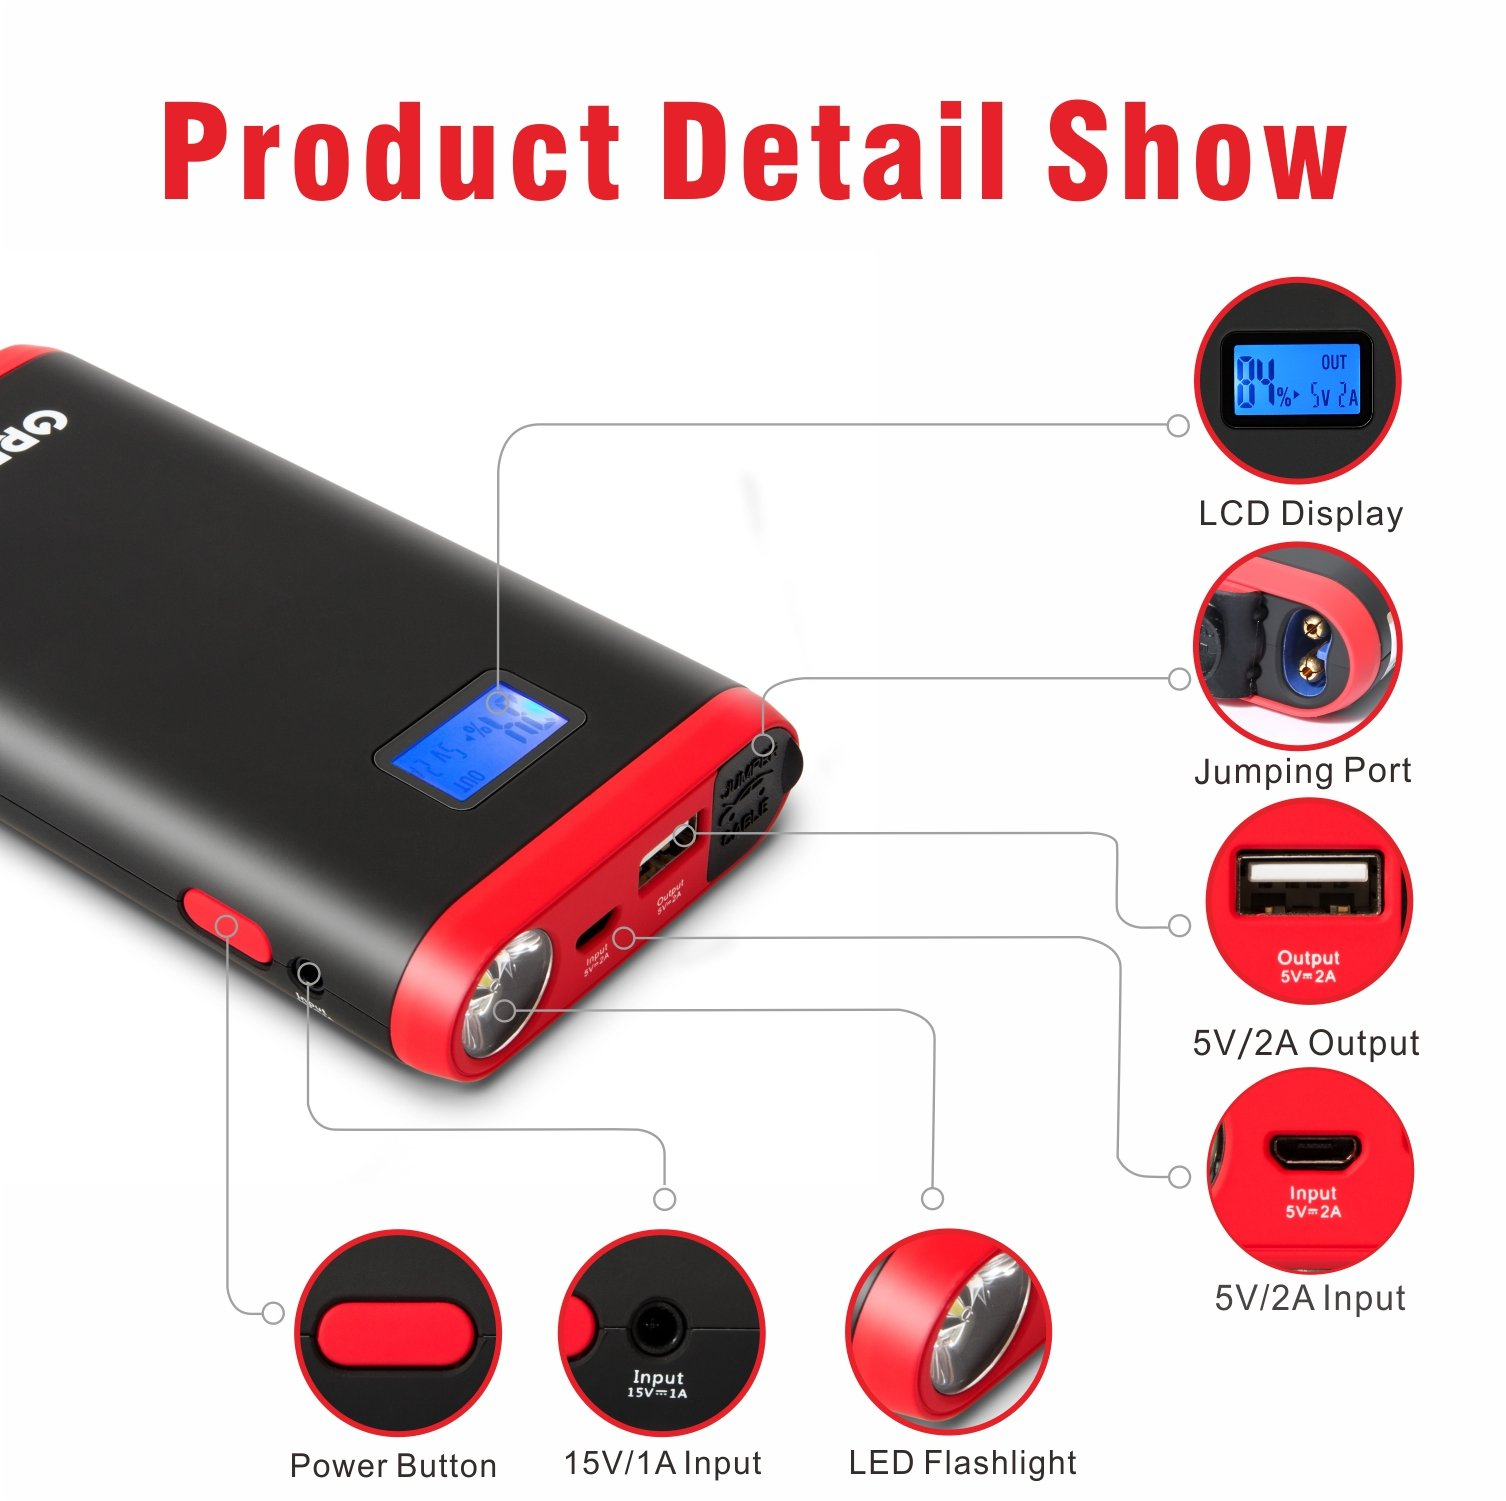 GREPRO Car Jump Starter 500A 12V Vehicle (Up to 4.5L Gas, 2.5L Diesel Engine) Smart Jumper Cable, Auto Battery Booster LED Flashlight, 9000mAh Portable Power Pack Quick Charge by GREPRO (Image #7)